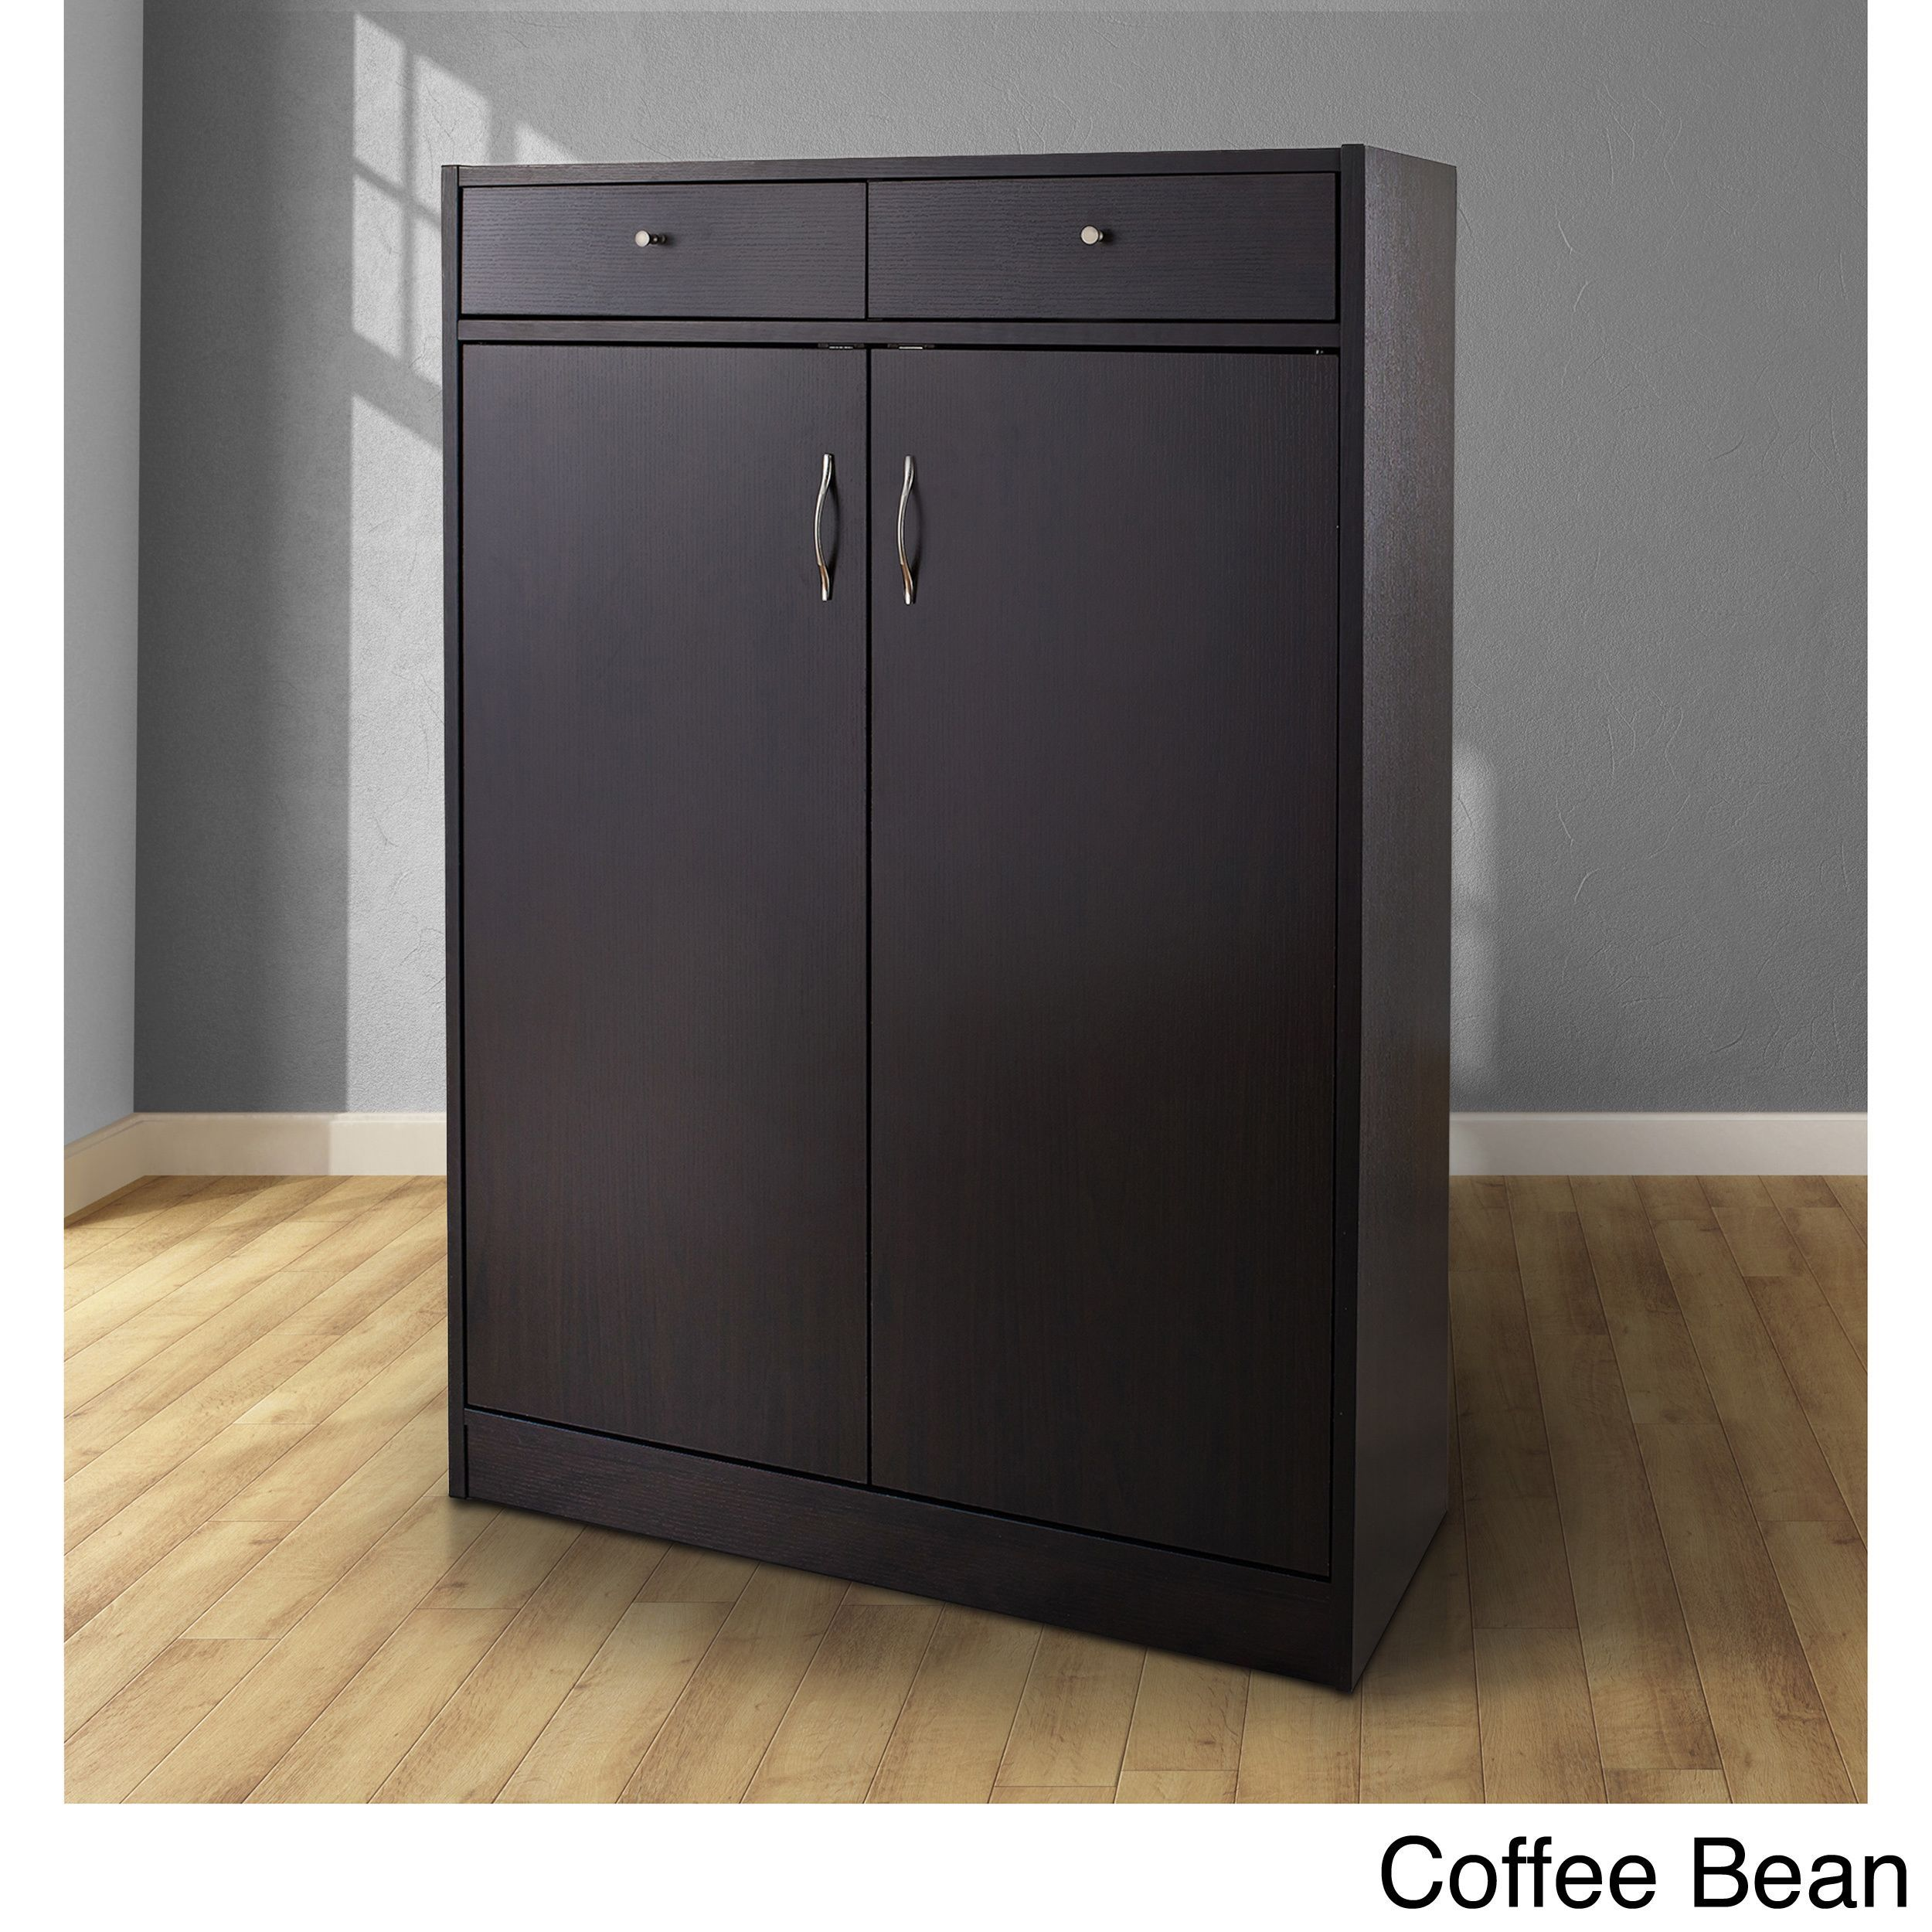 Furniture Of America 5 Shelf Shoe Cabinet With Two Upper Storage Bins Coffee Bean